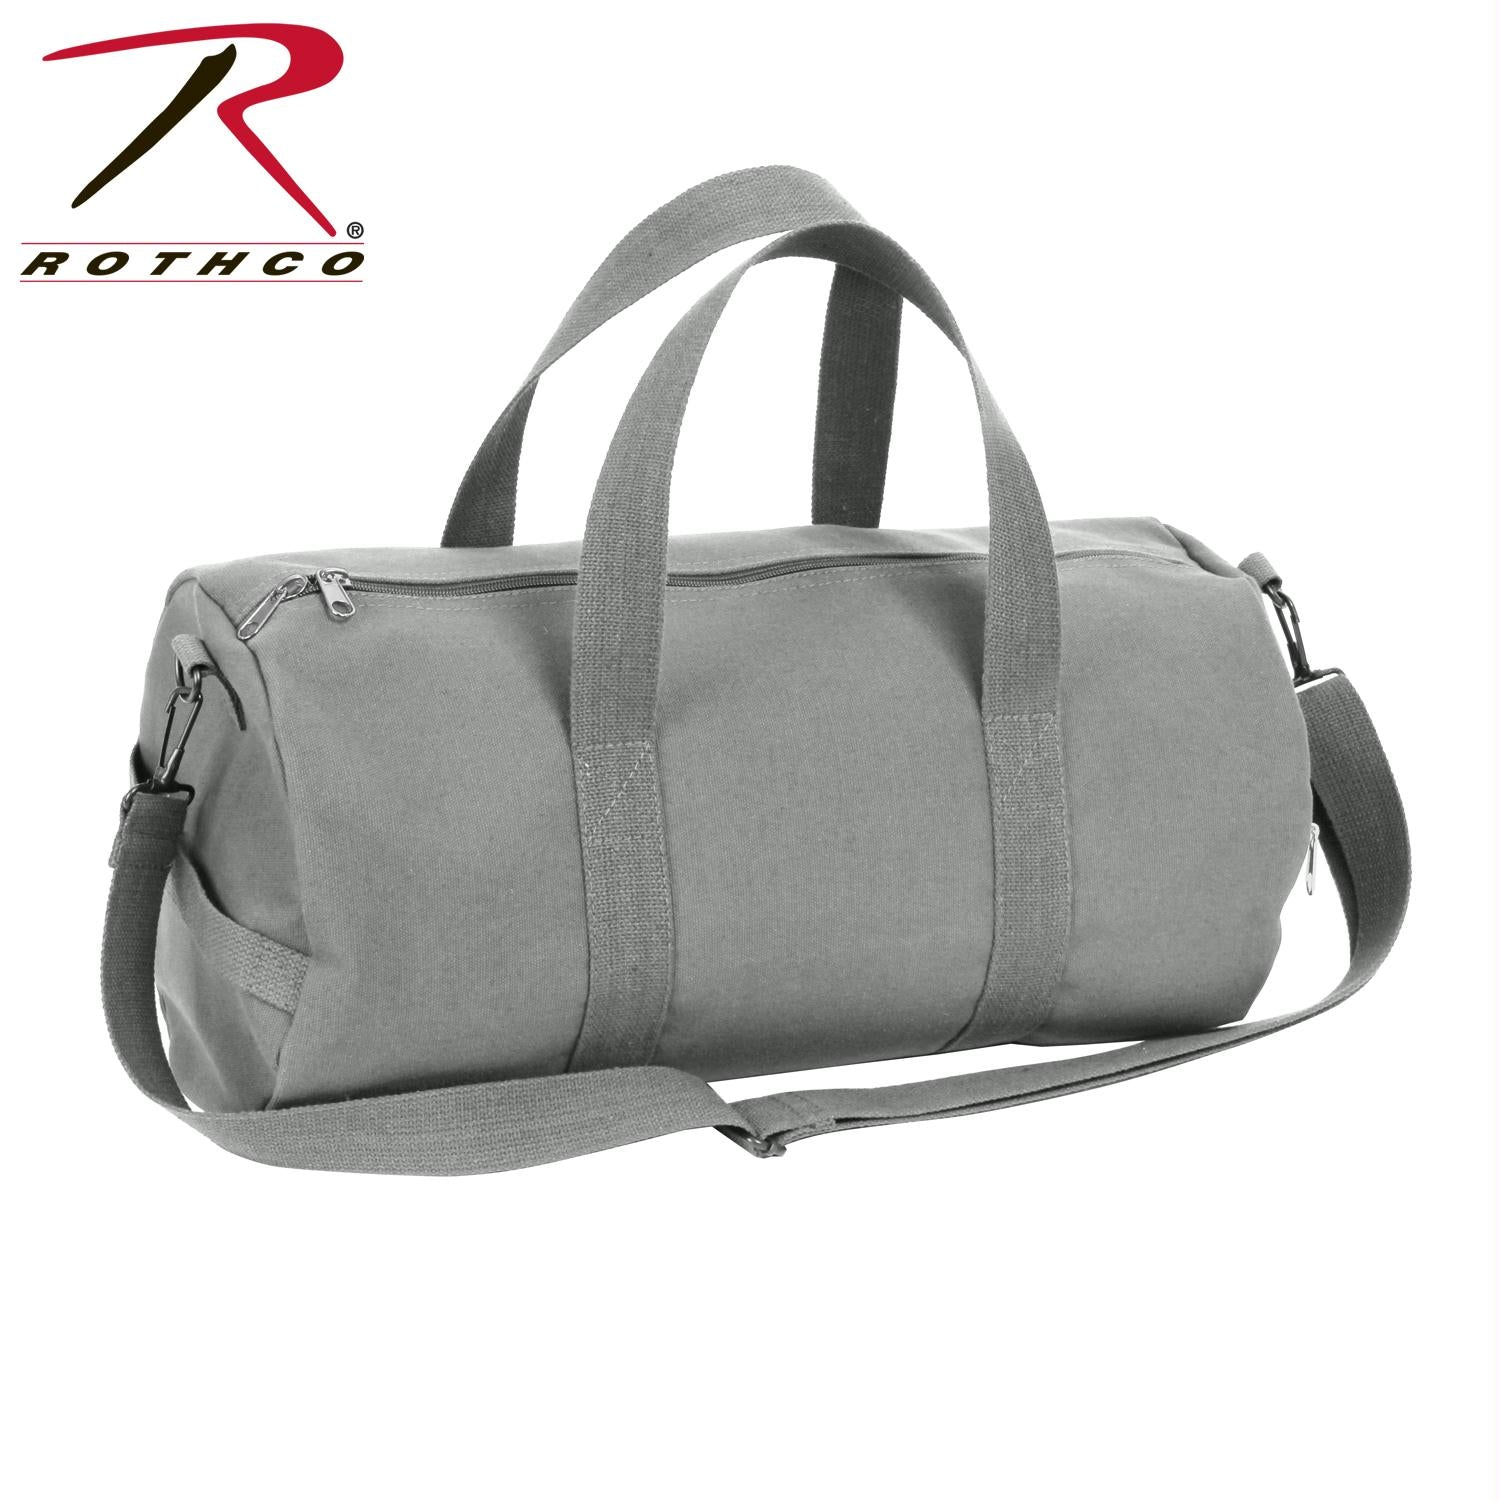 Rothco Canvas Shoulder Duffle Bag - 19 Inch - Grey